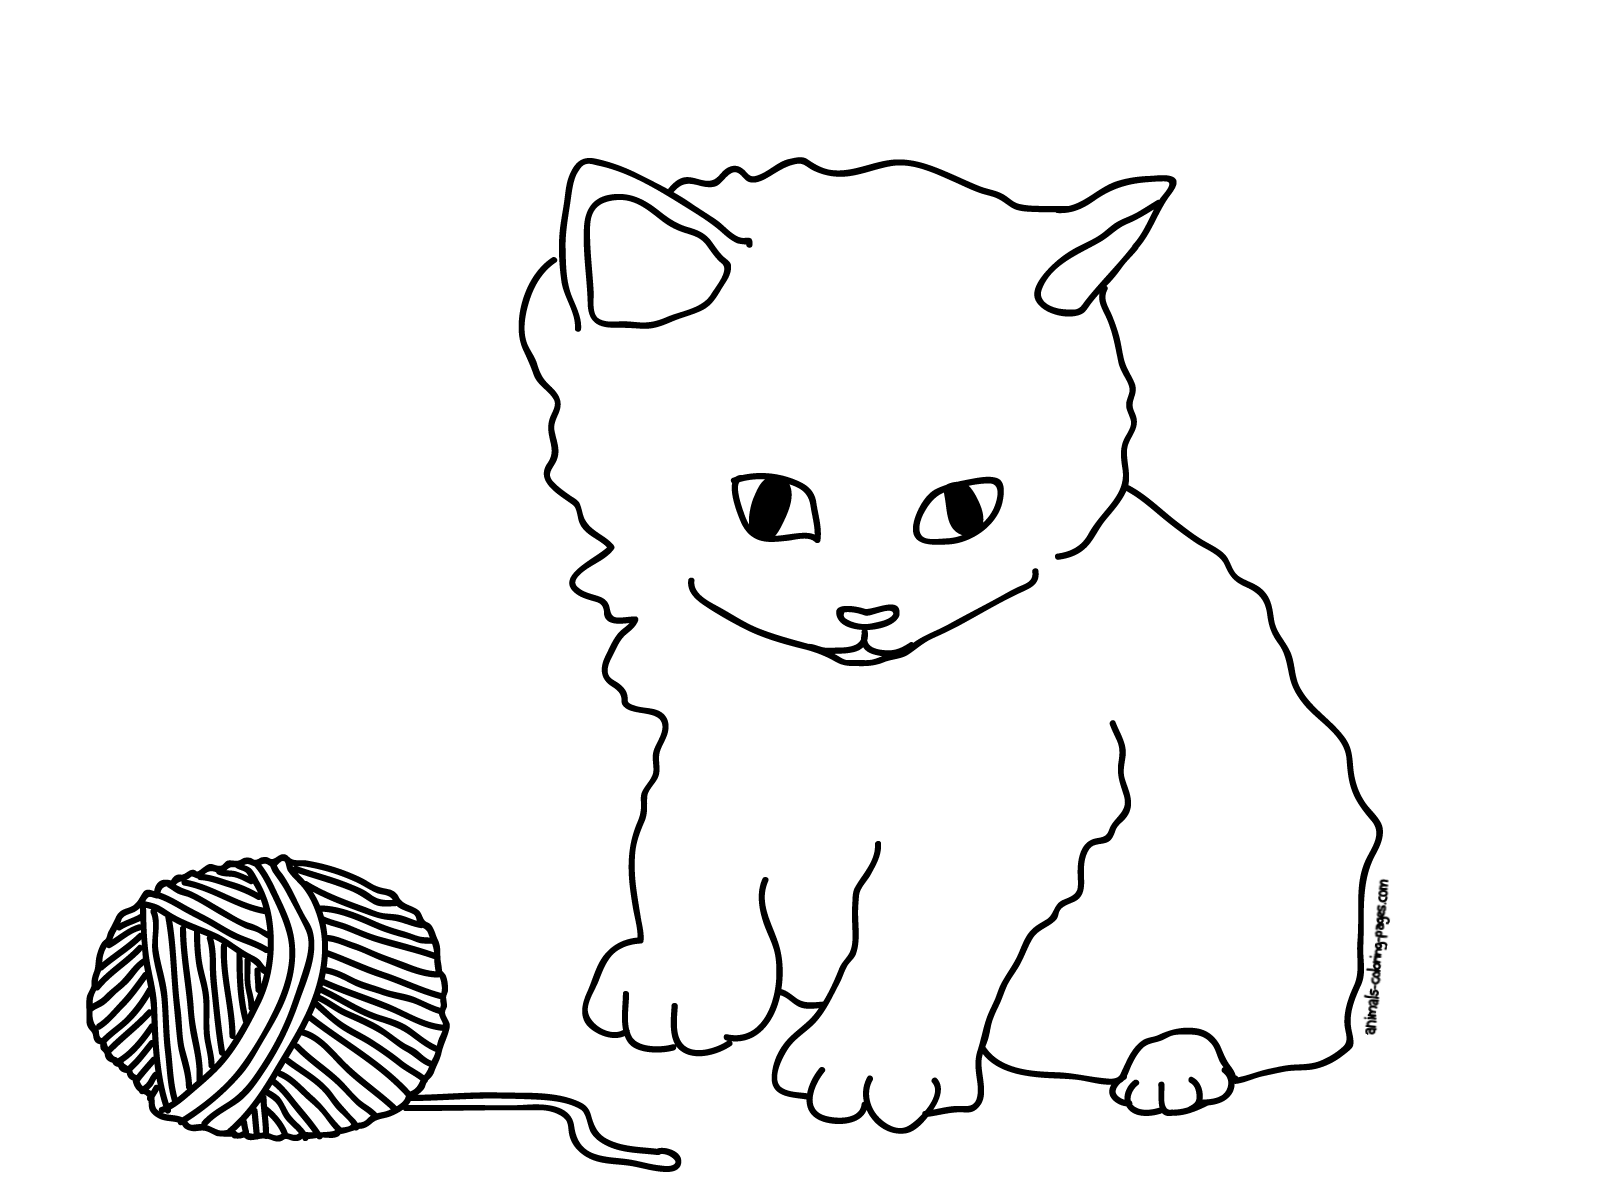 kitty cat printable coloring pages free printable kitten coloring pages for kids best pages printable cat kitty coloring